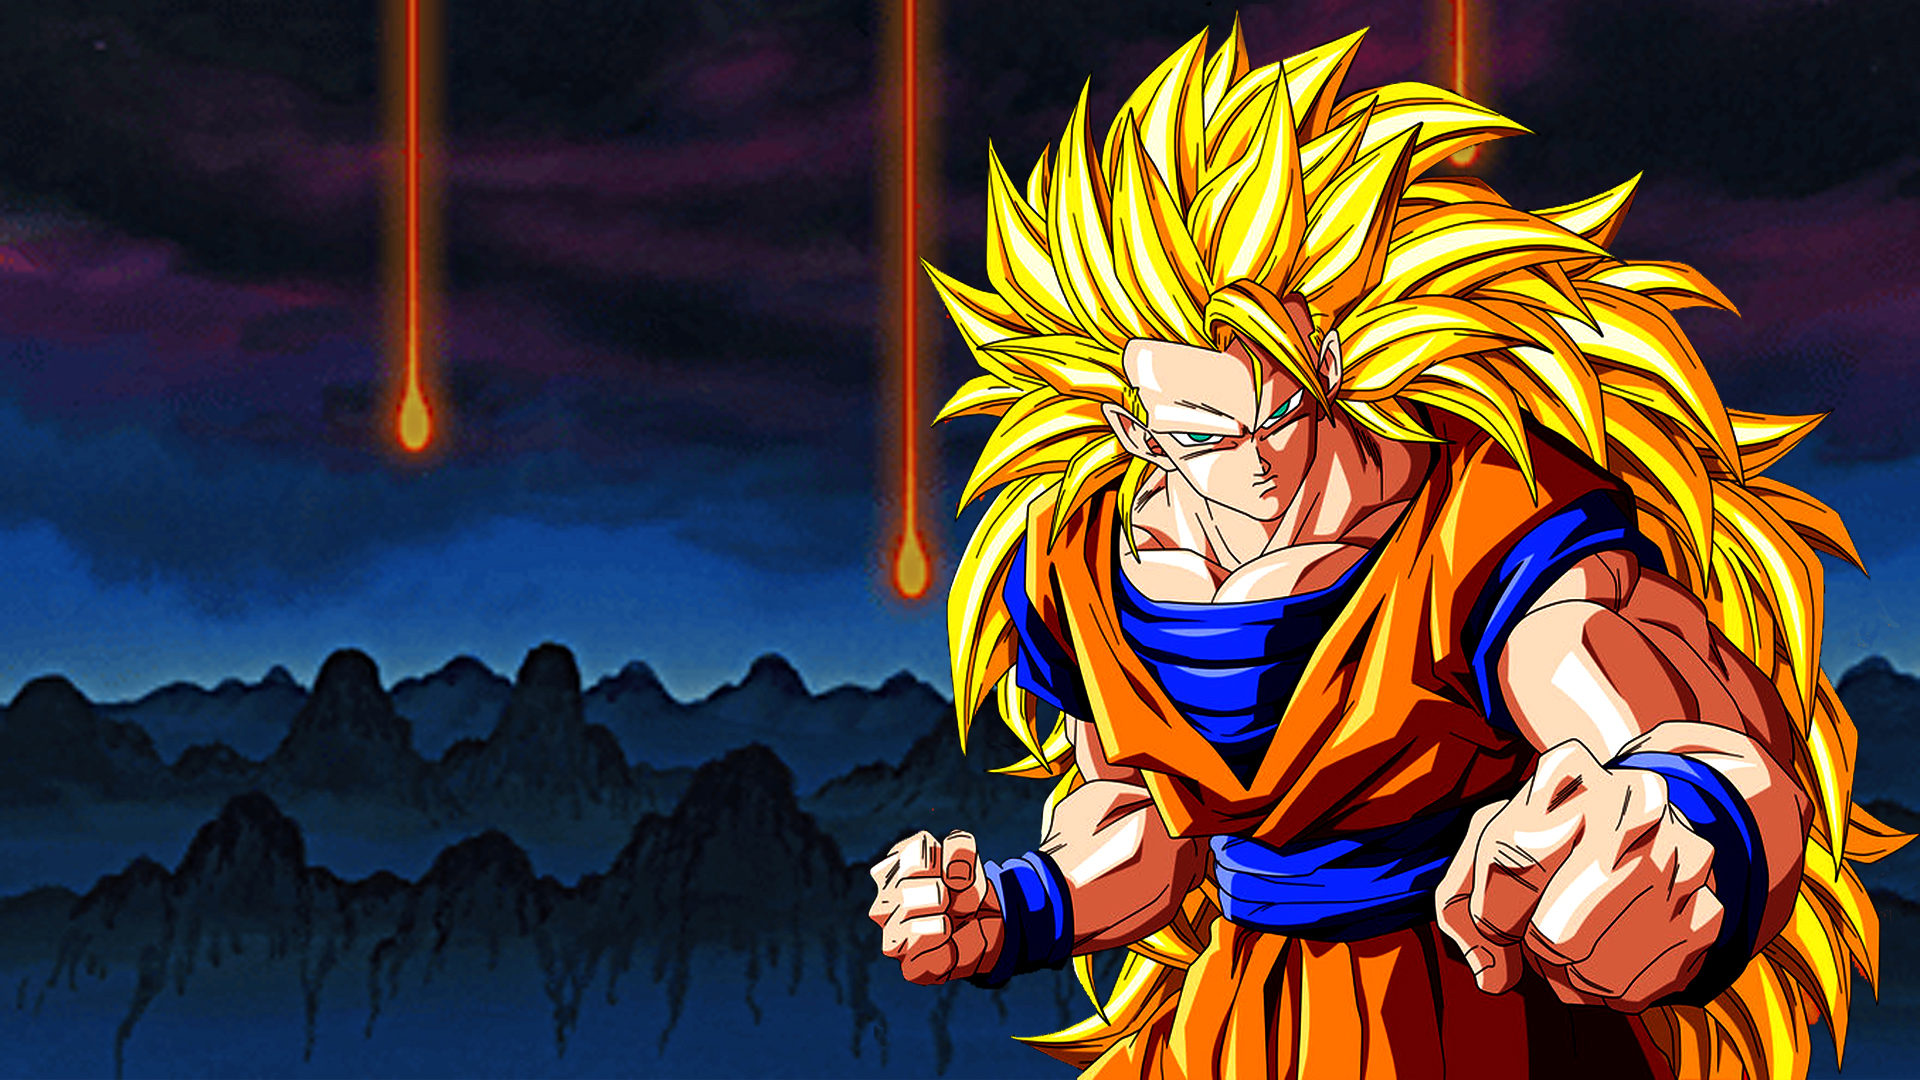 dragon ball z hd wallpaper free download